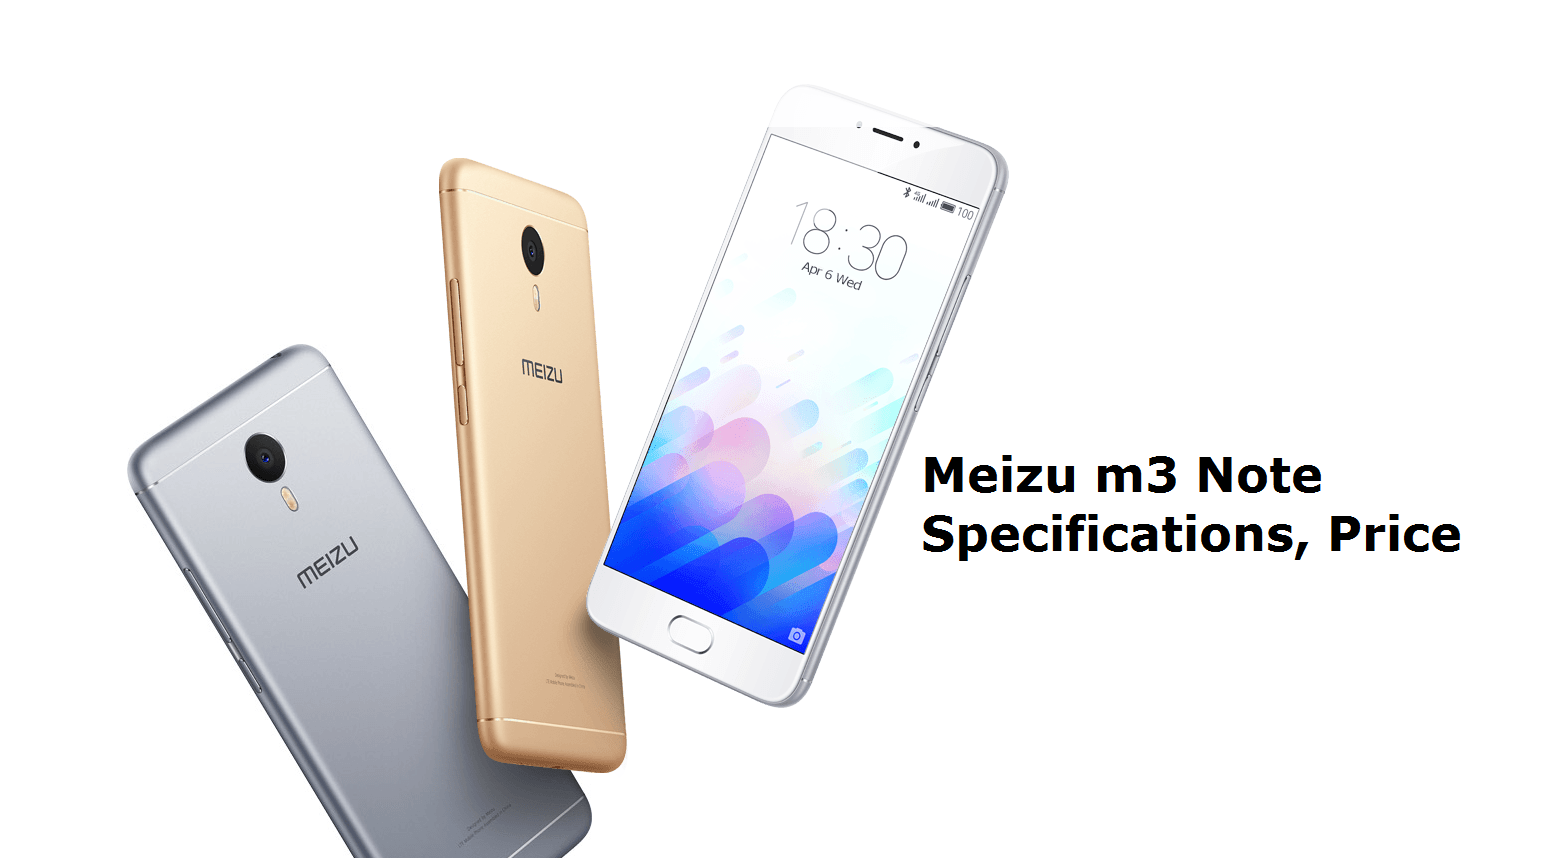 Meizu m3 note Specifications, Features and Price (With